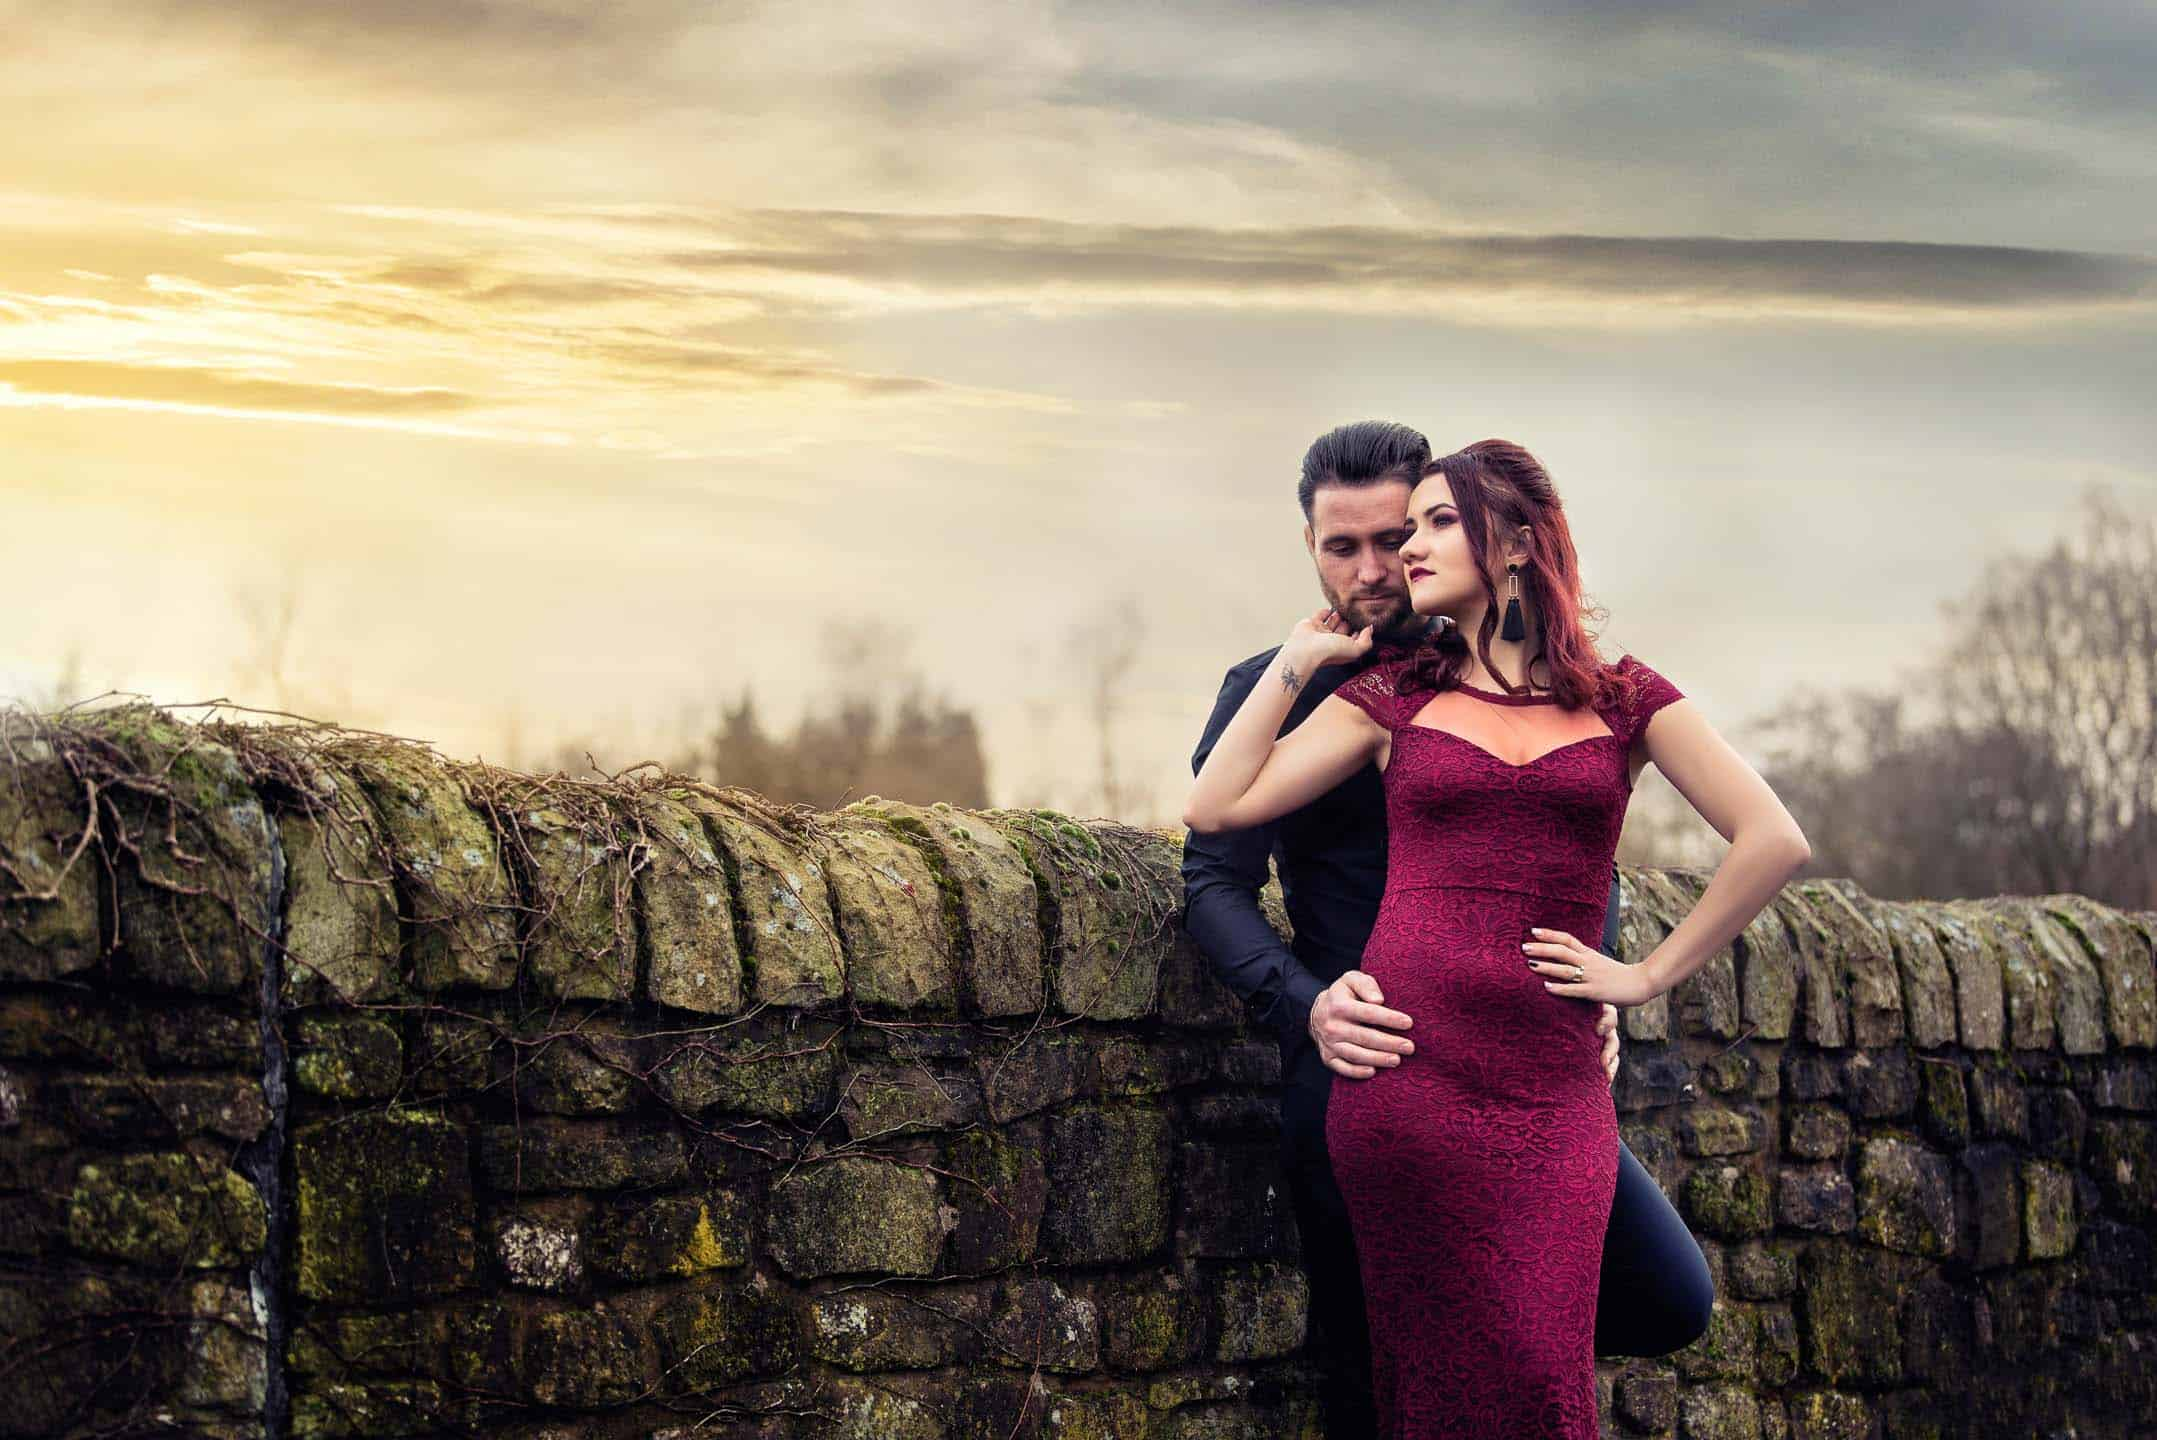 Manchester Wedding Photography by Alin Turcanu Photographer natural moment